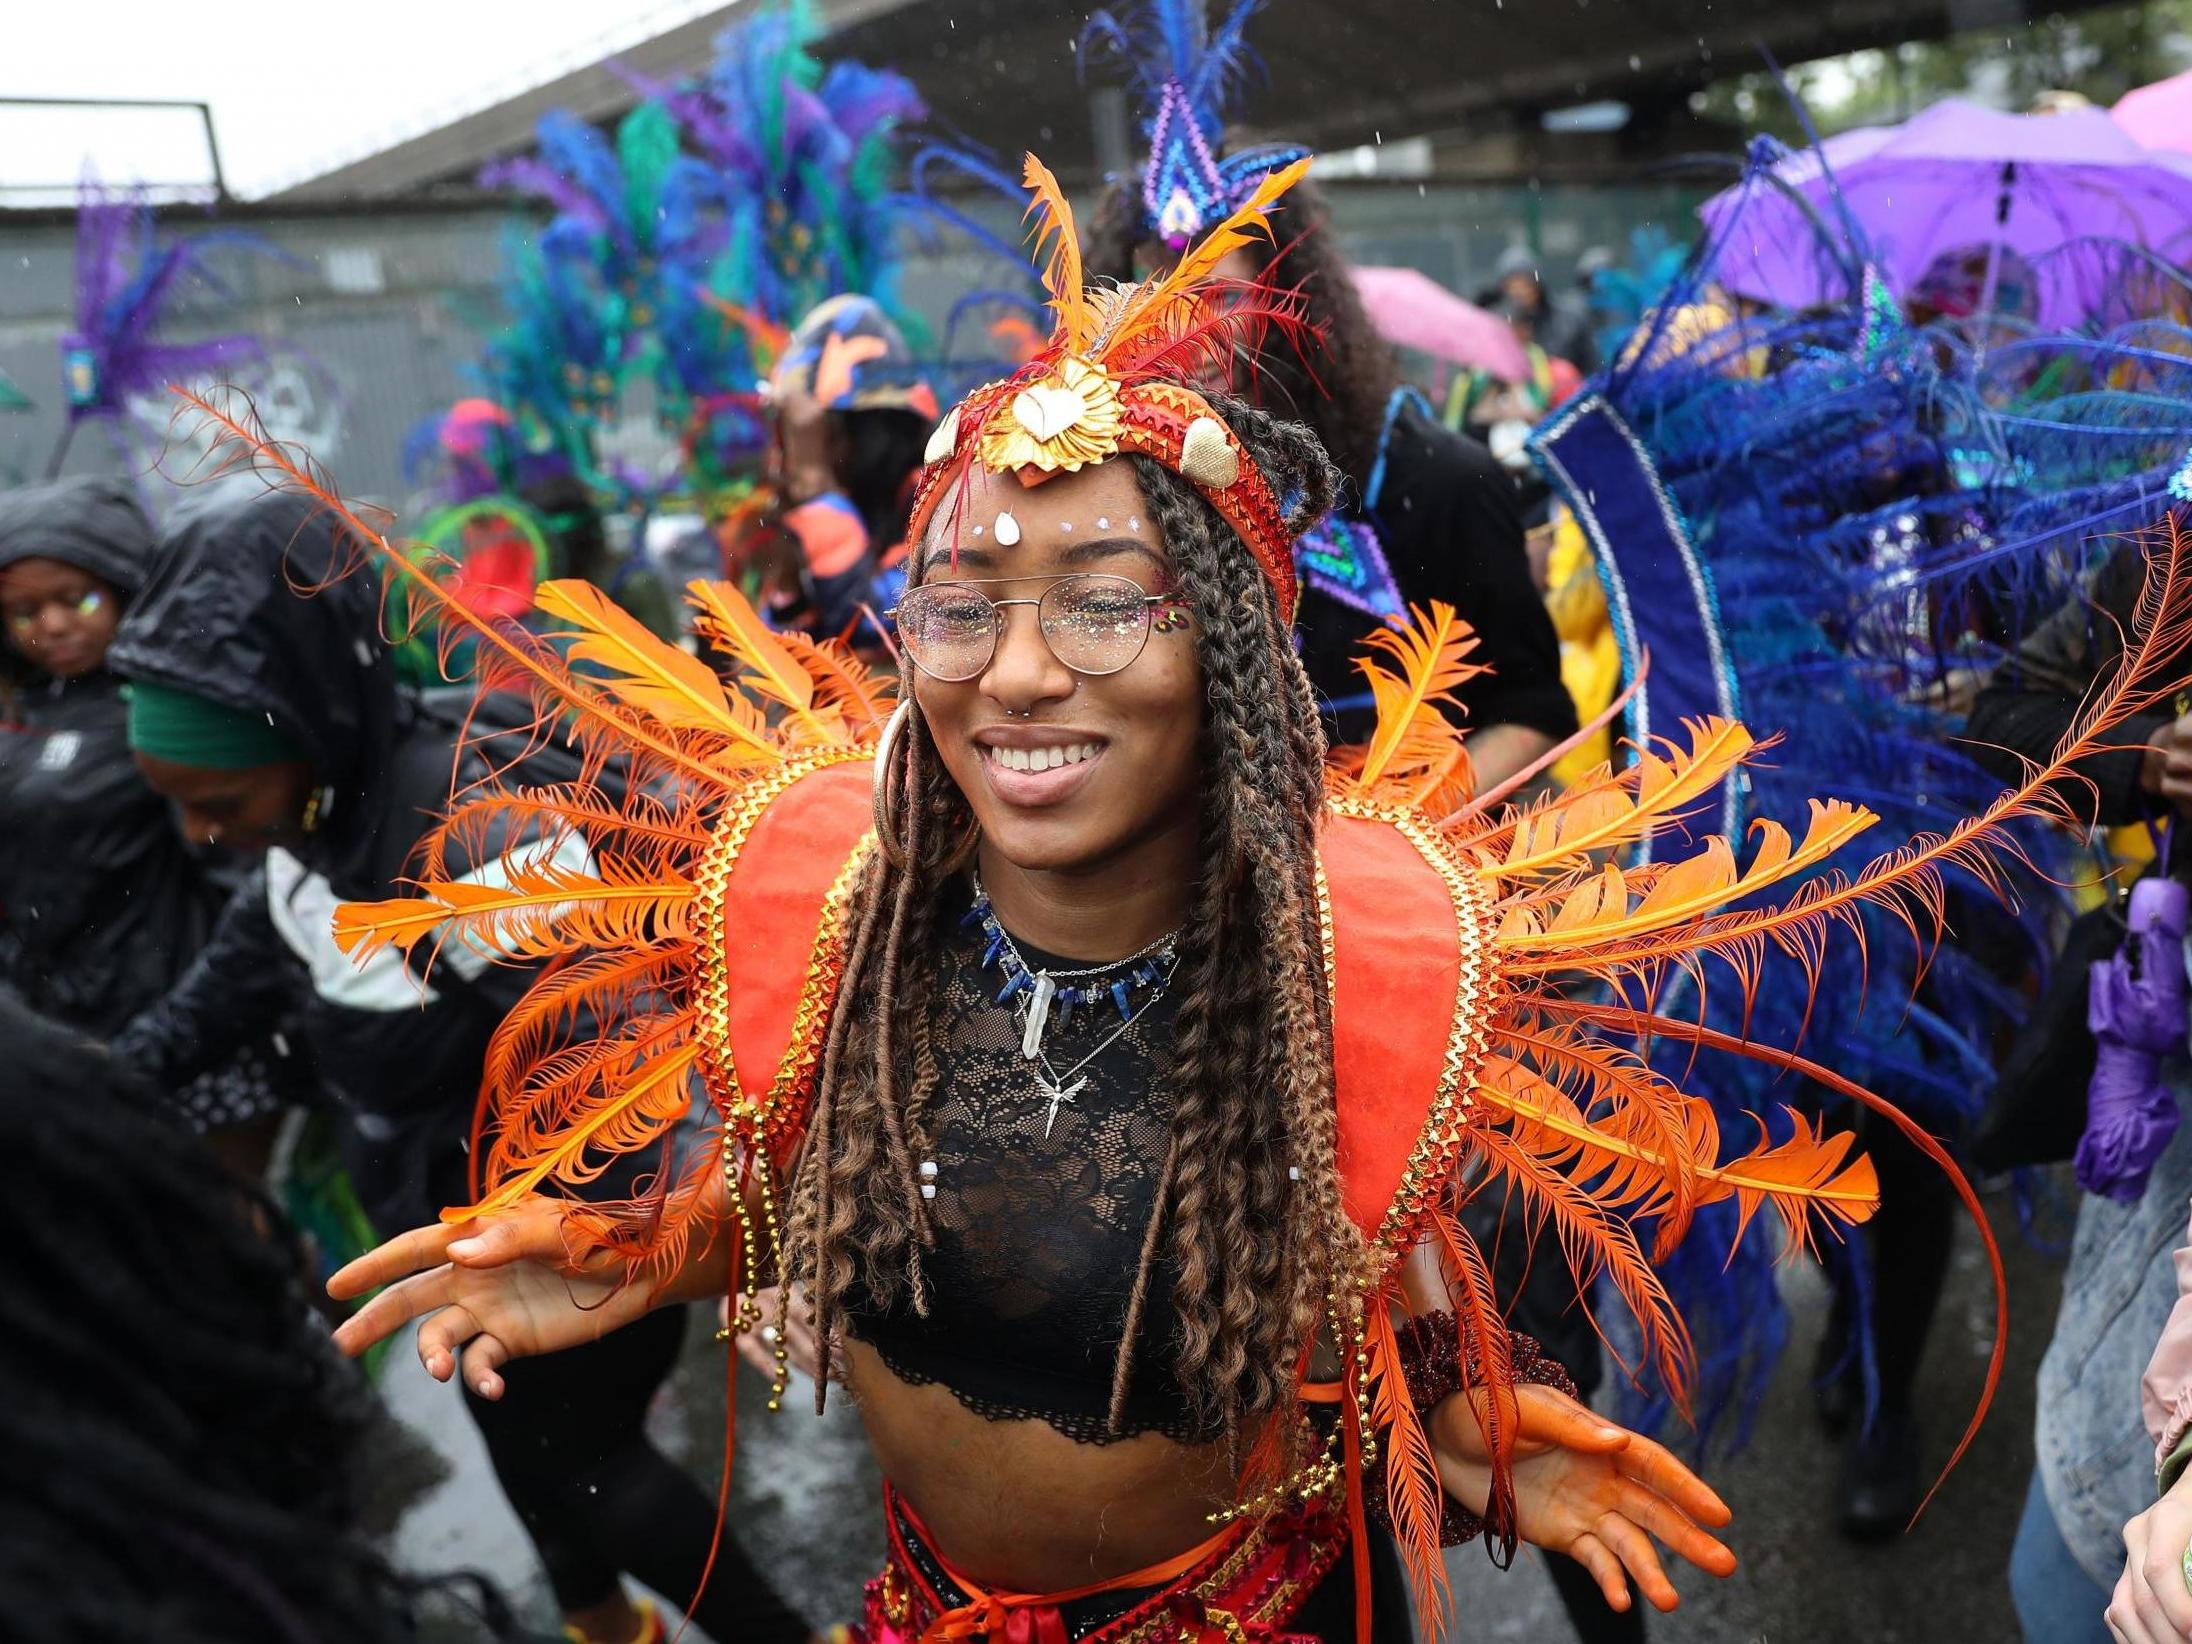 Notting Hill Carnival - a window into the past